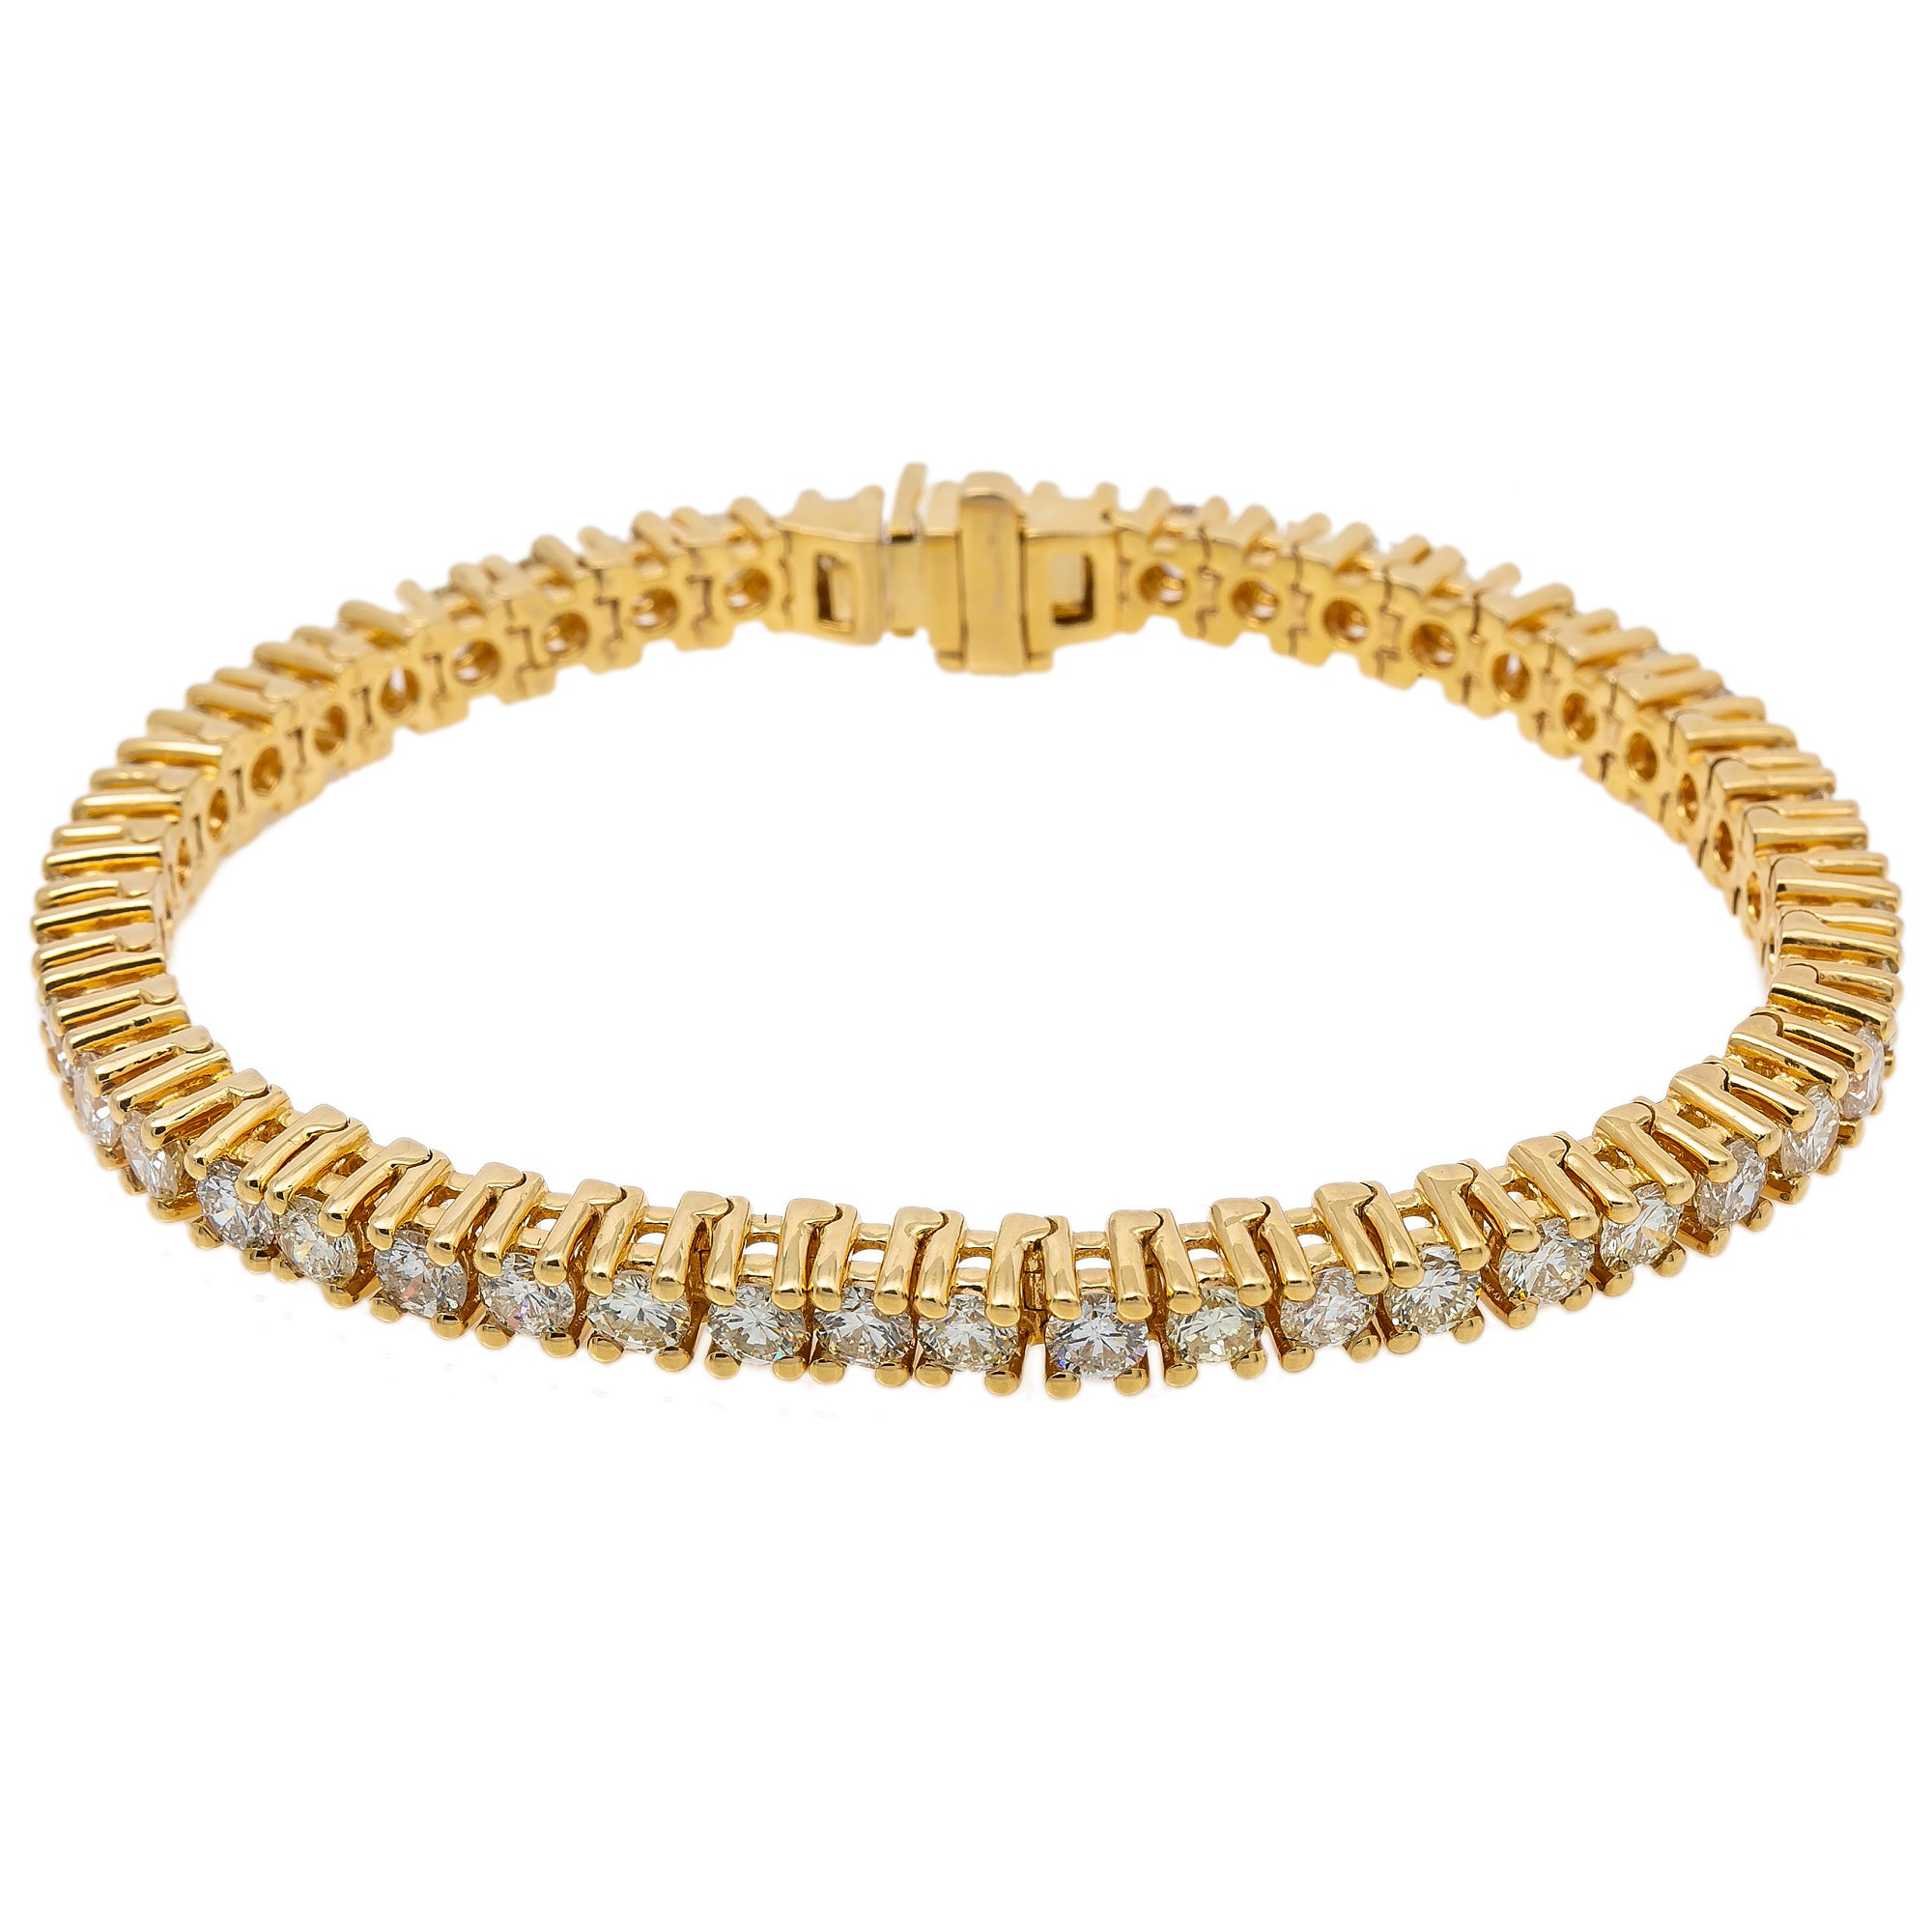 14K YELLOW GOLD WOMEN'S BRACELET WITH 13.78 CT DIAMONDS